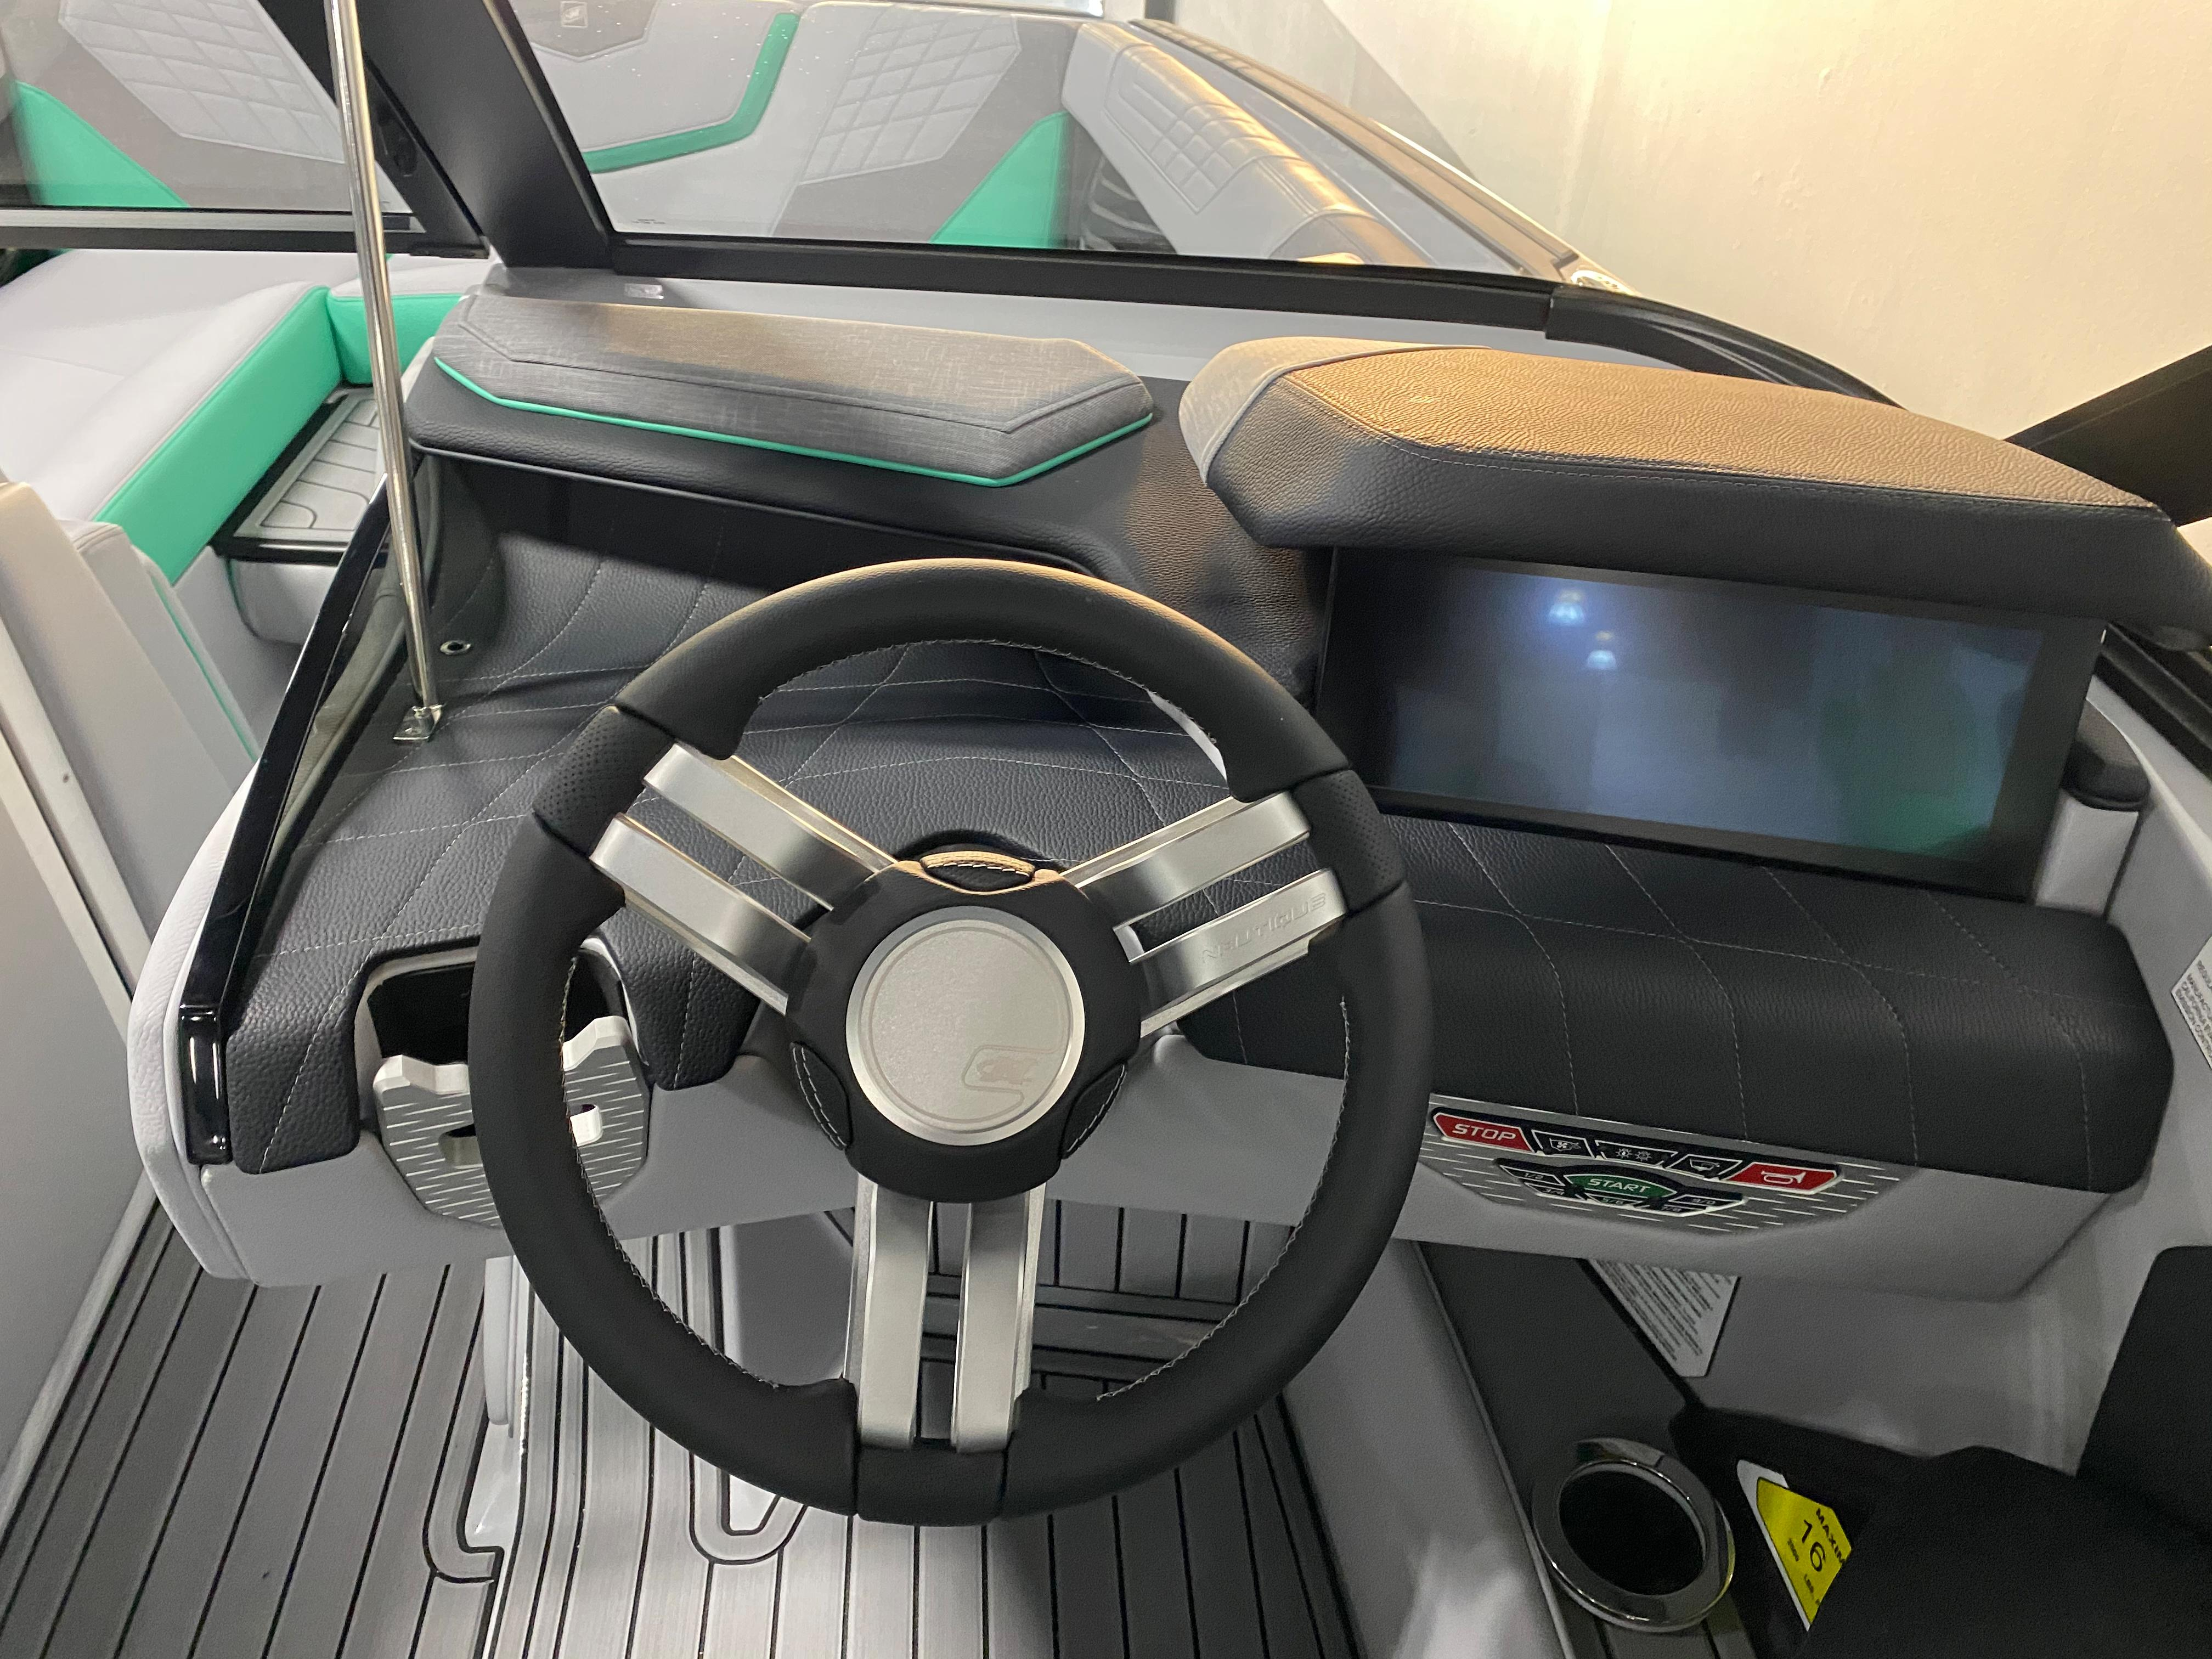 2021 Nautique G23 #N4262J inventory image at Sun Country Inland in Irvine